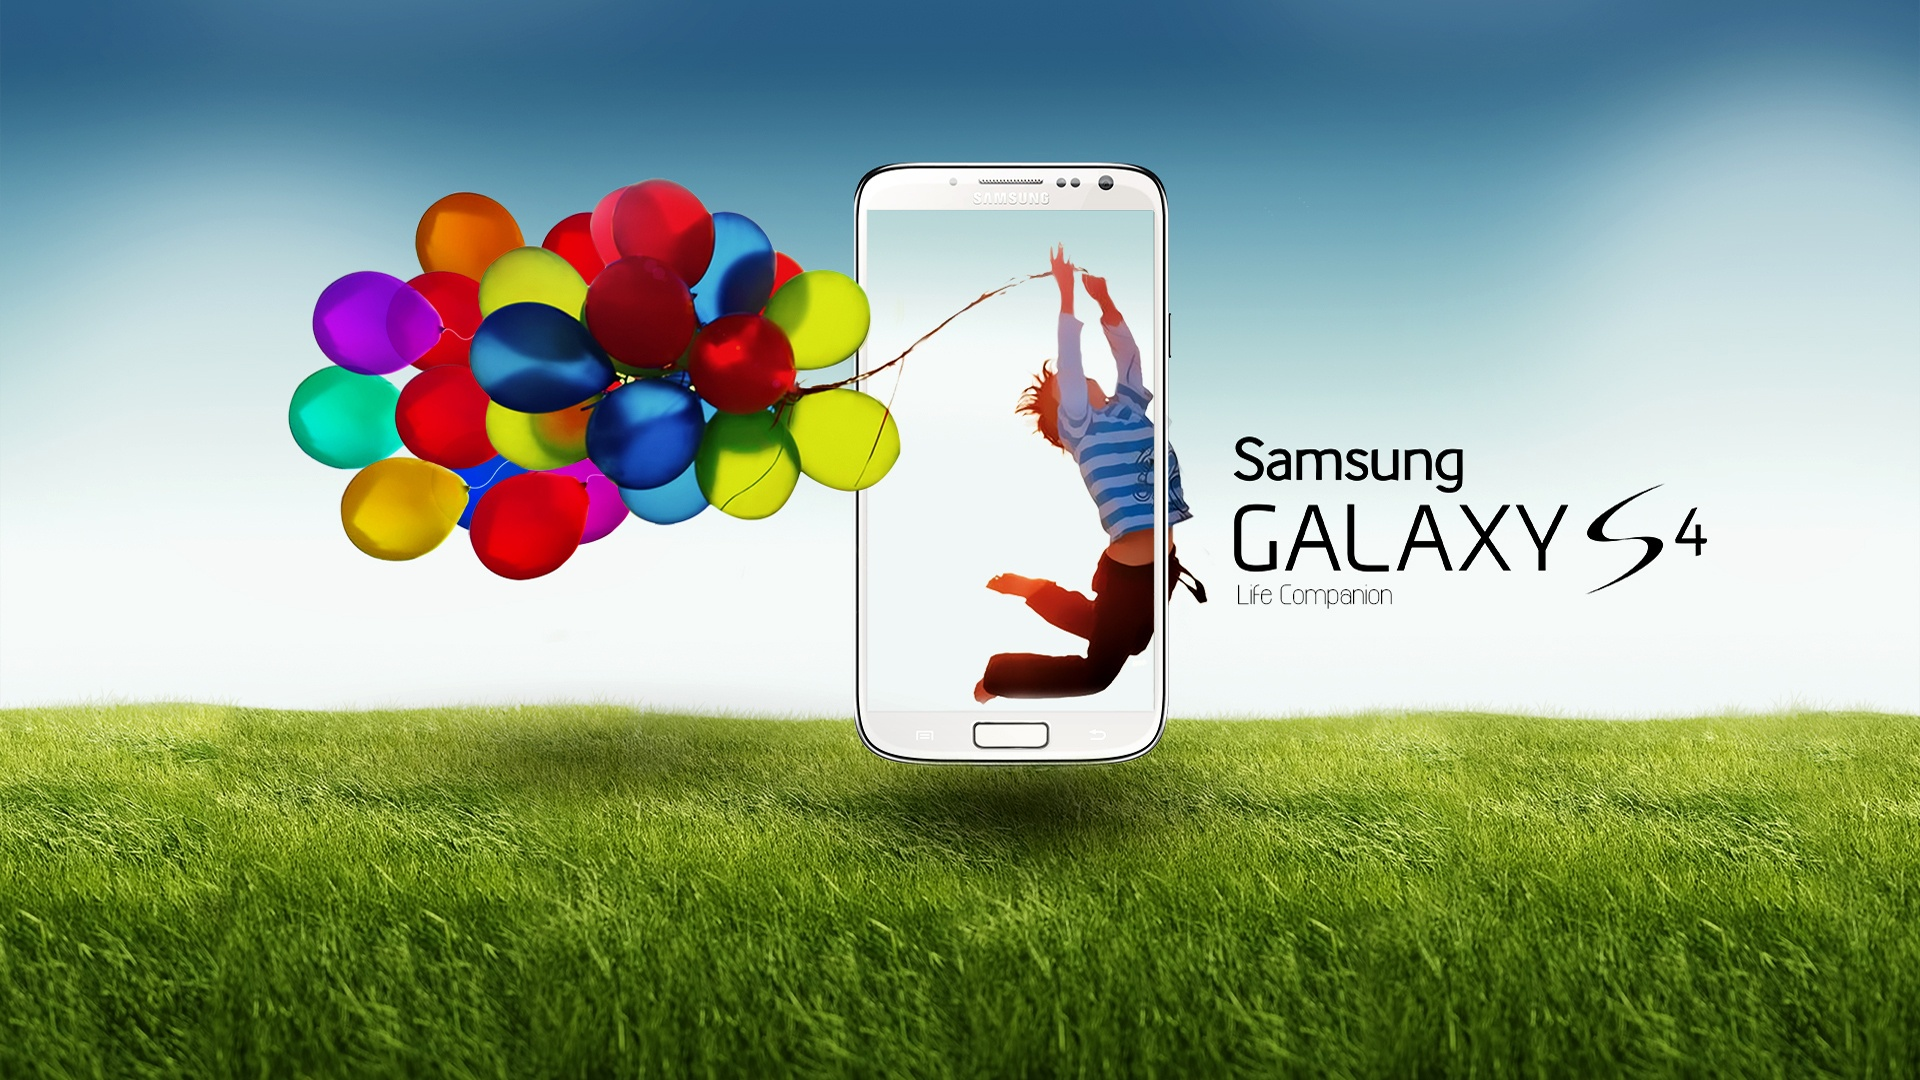 wallpaper samsung galaxy s4 ads 1920x1080 full hd picture, image